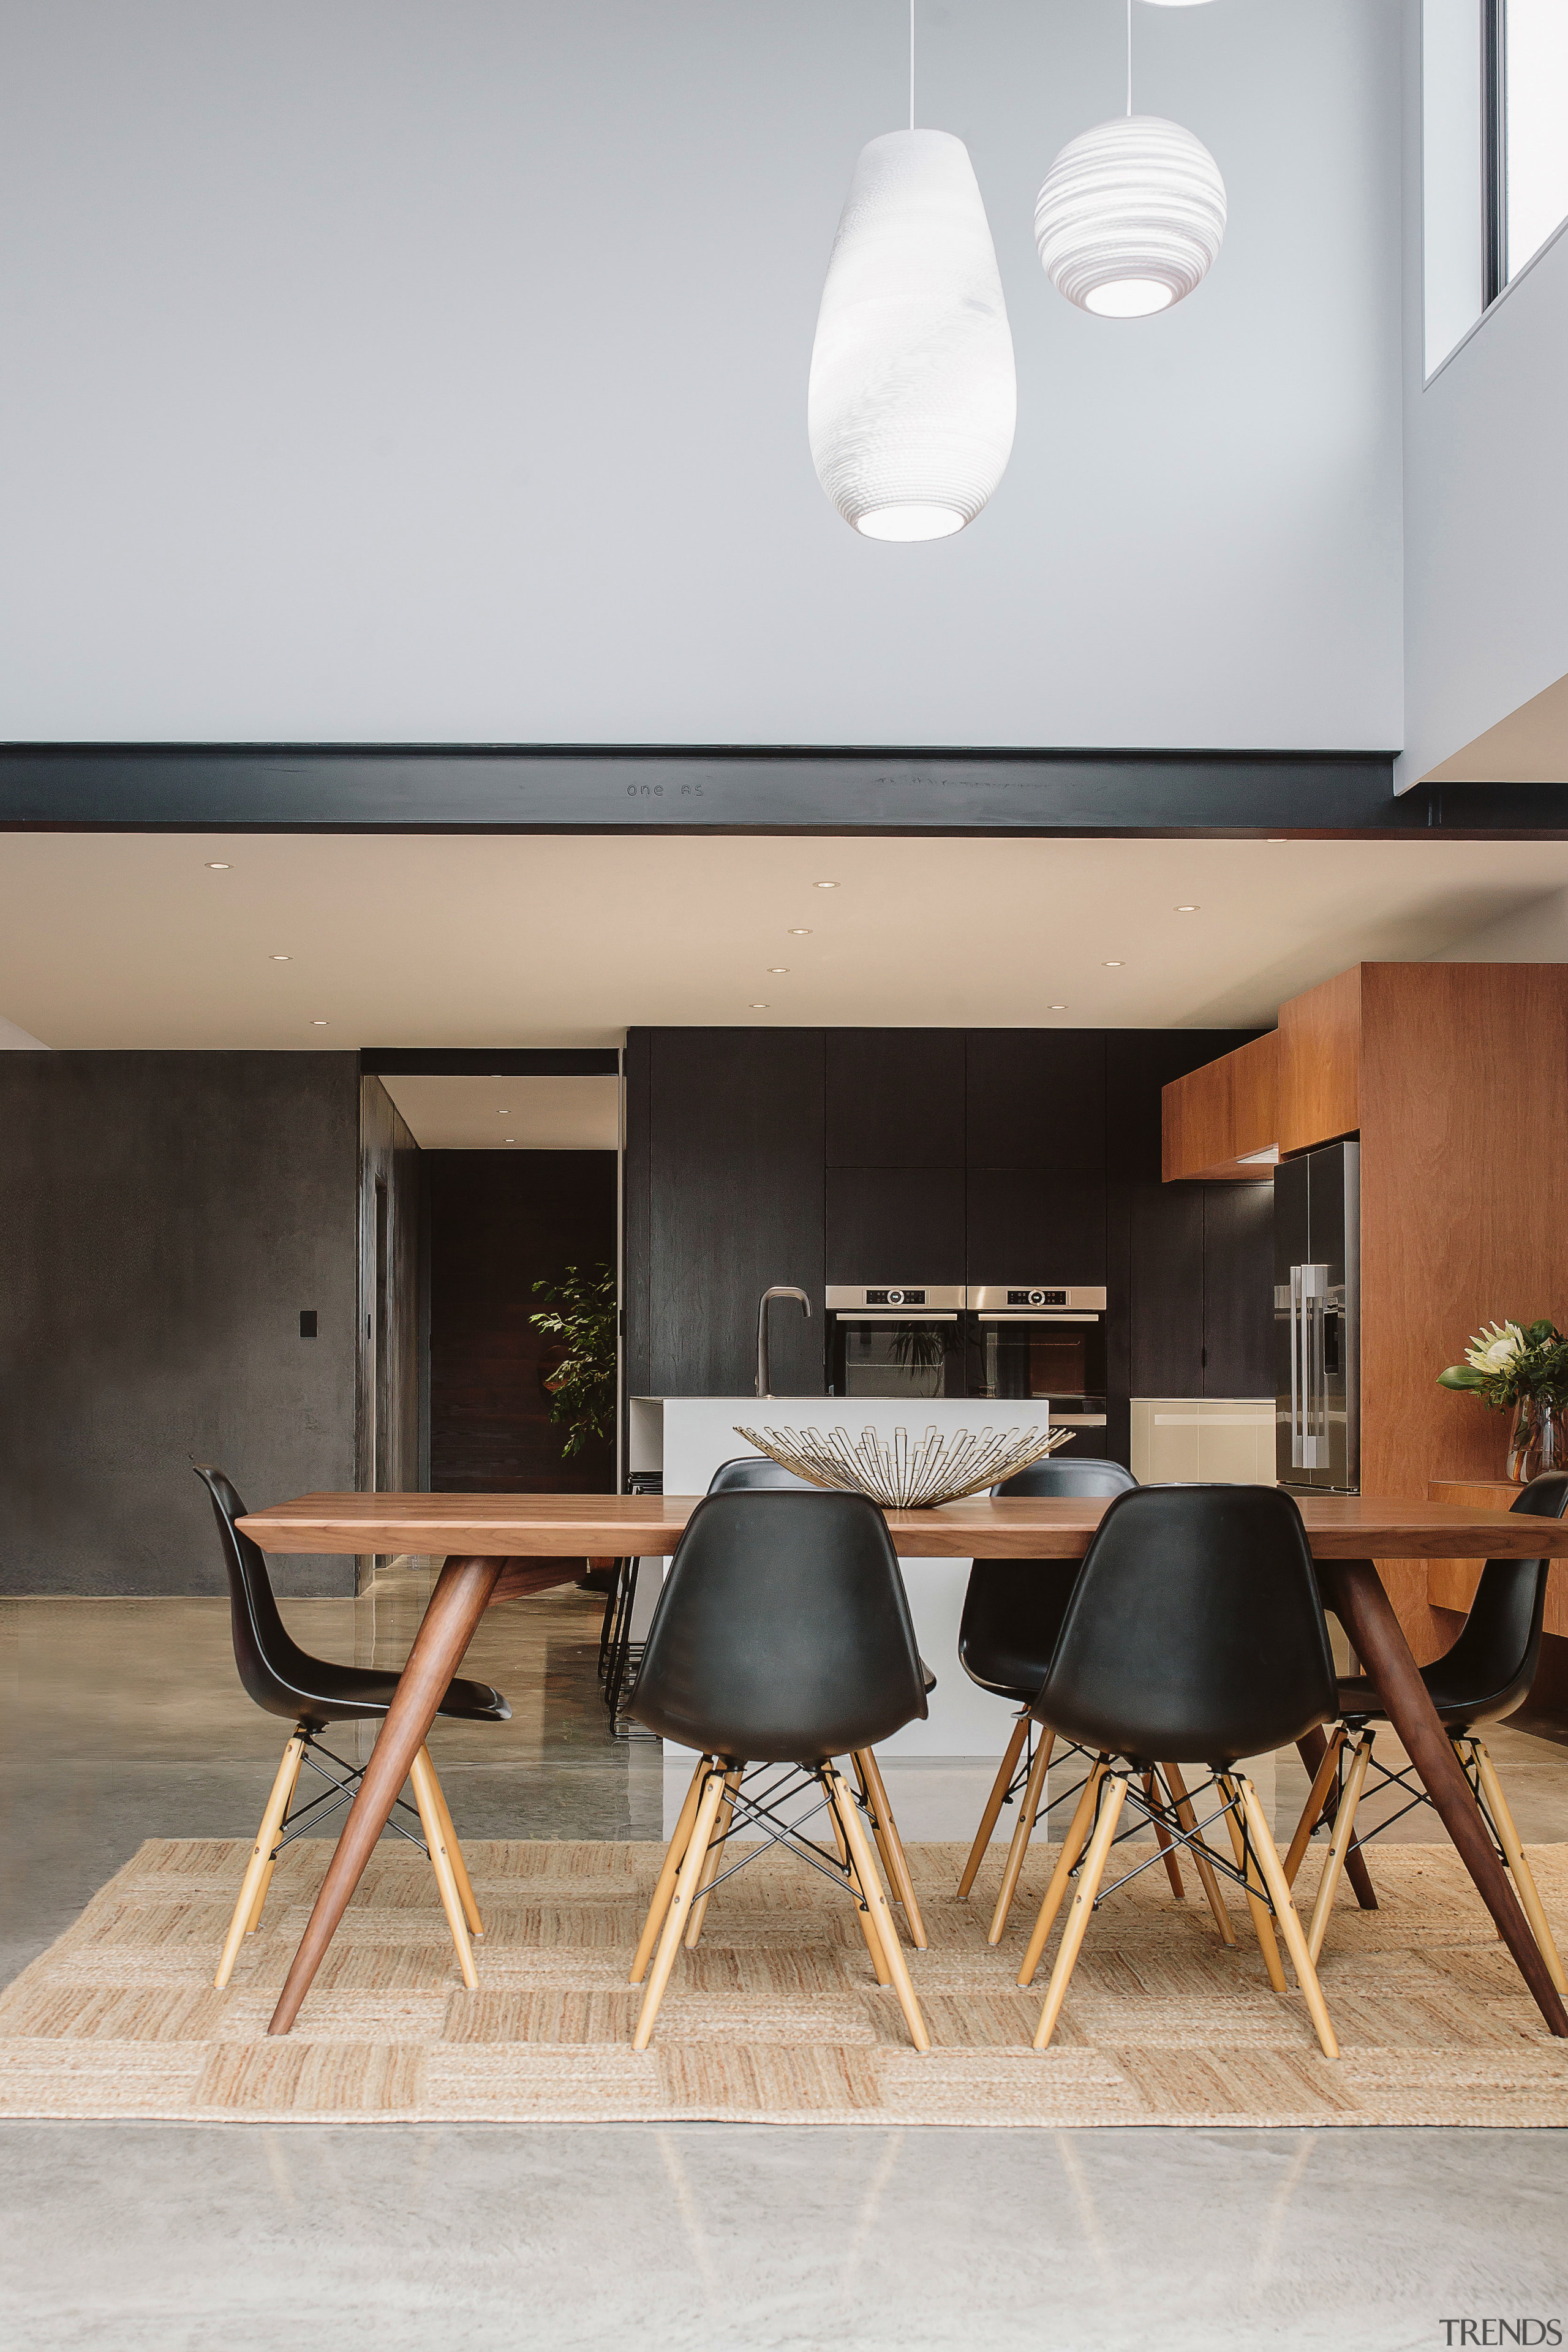 Polished concrete floors ground this kitchens predominant palette ceiling, chair, dining room, furniture, house, interior design, light fixture, product design, table, gray